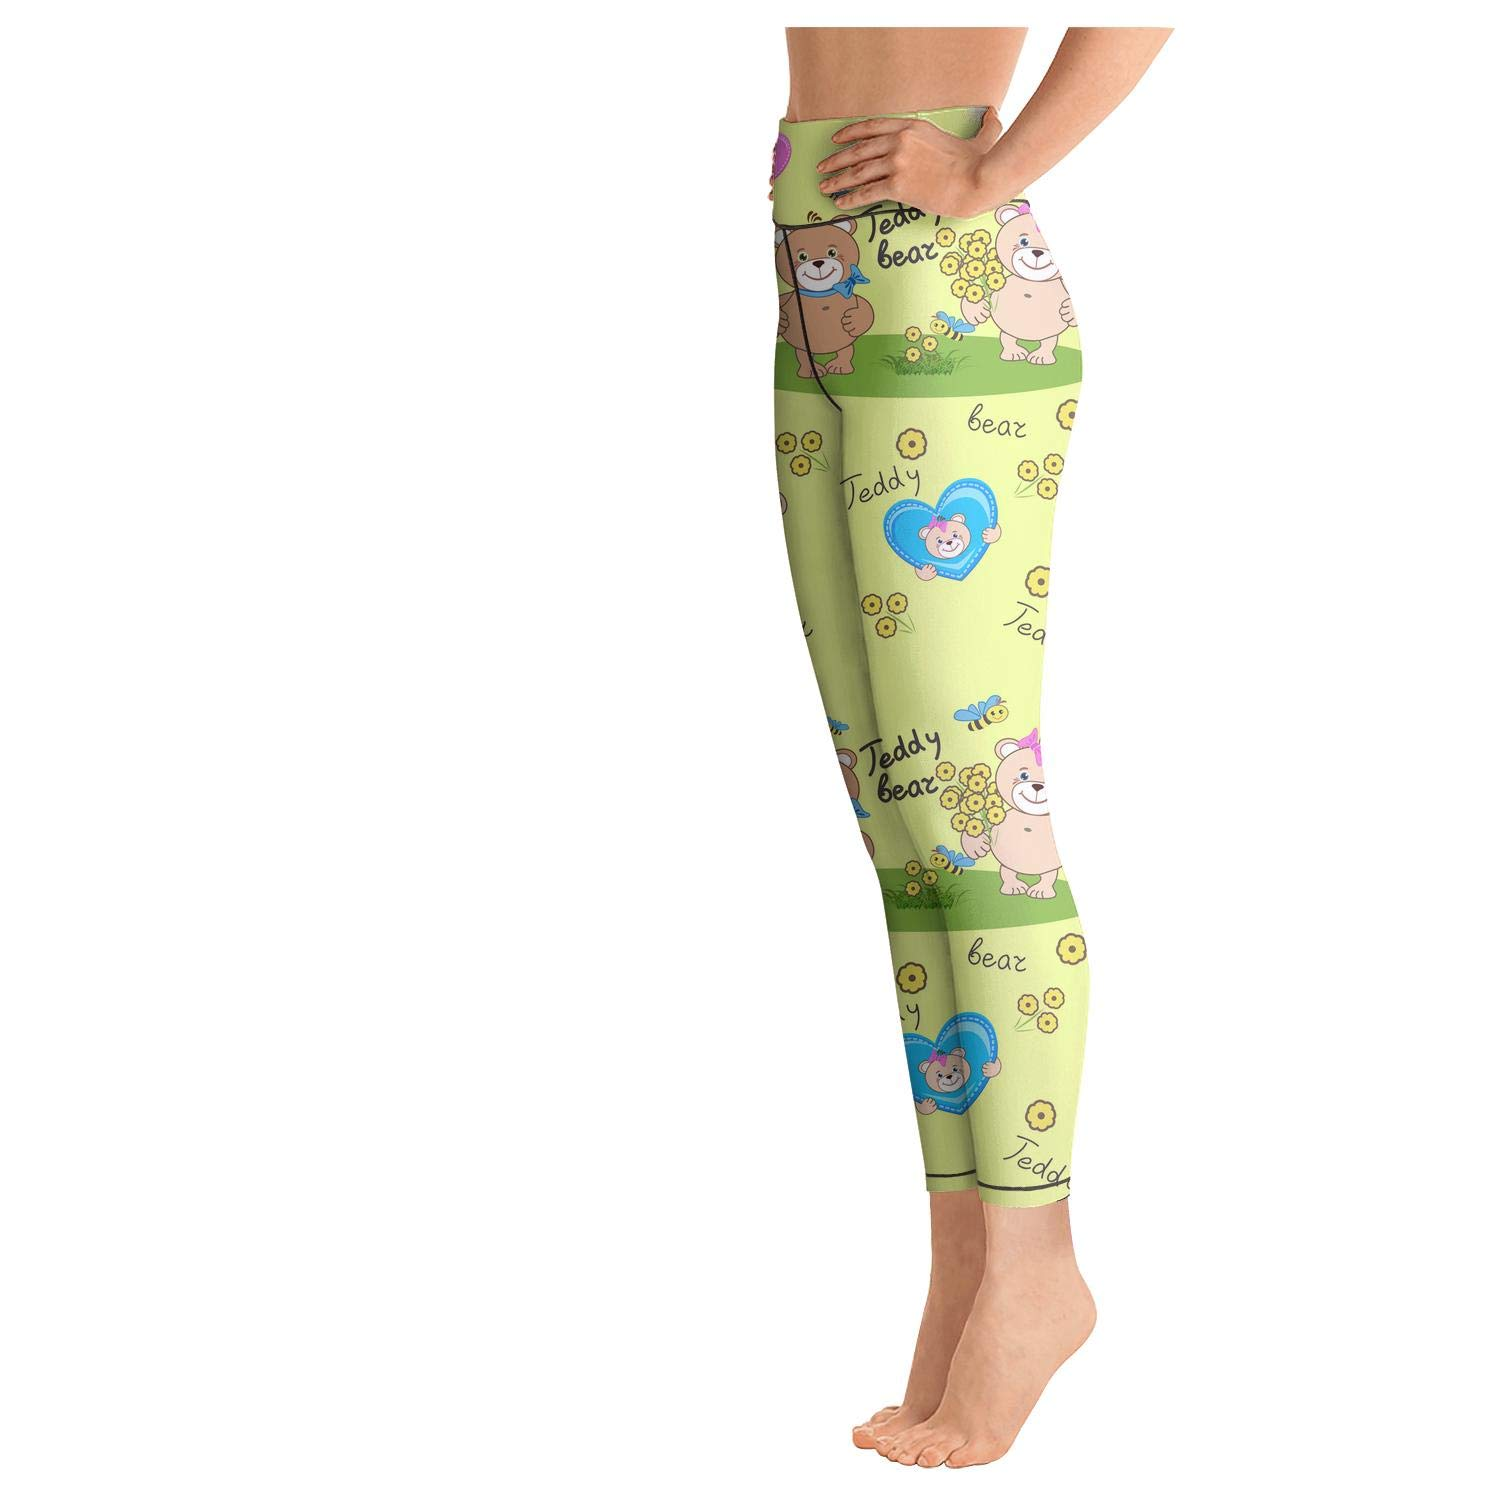 AWAWE Big Teddy Bears for Girls Biker Leggings Cool Gym wear